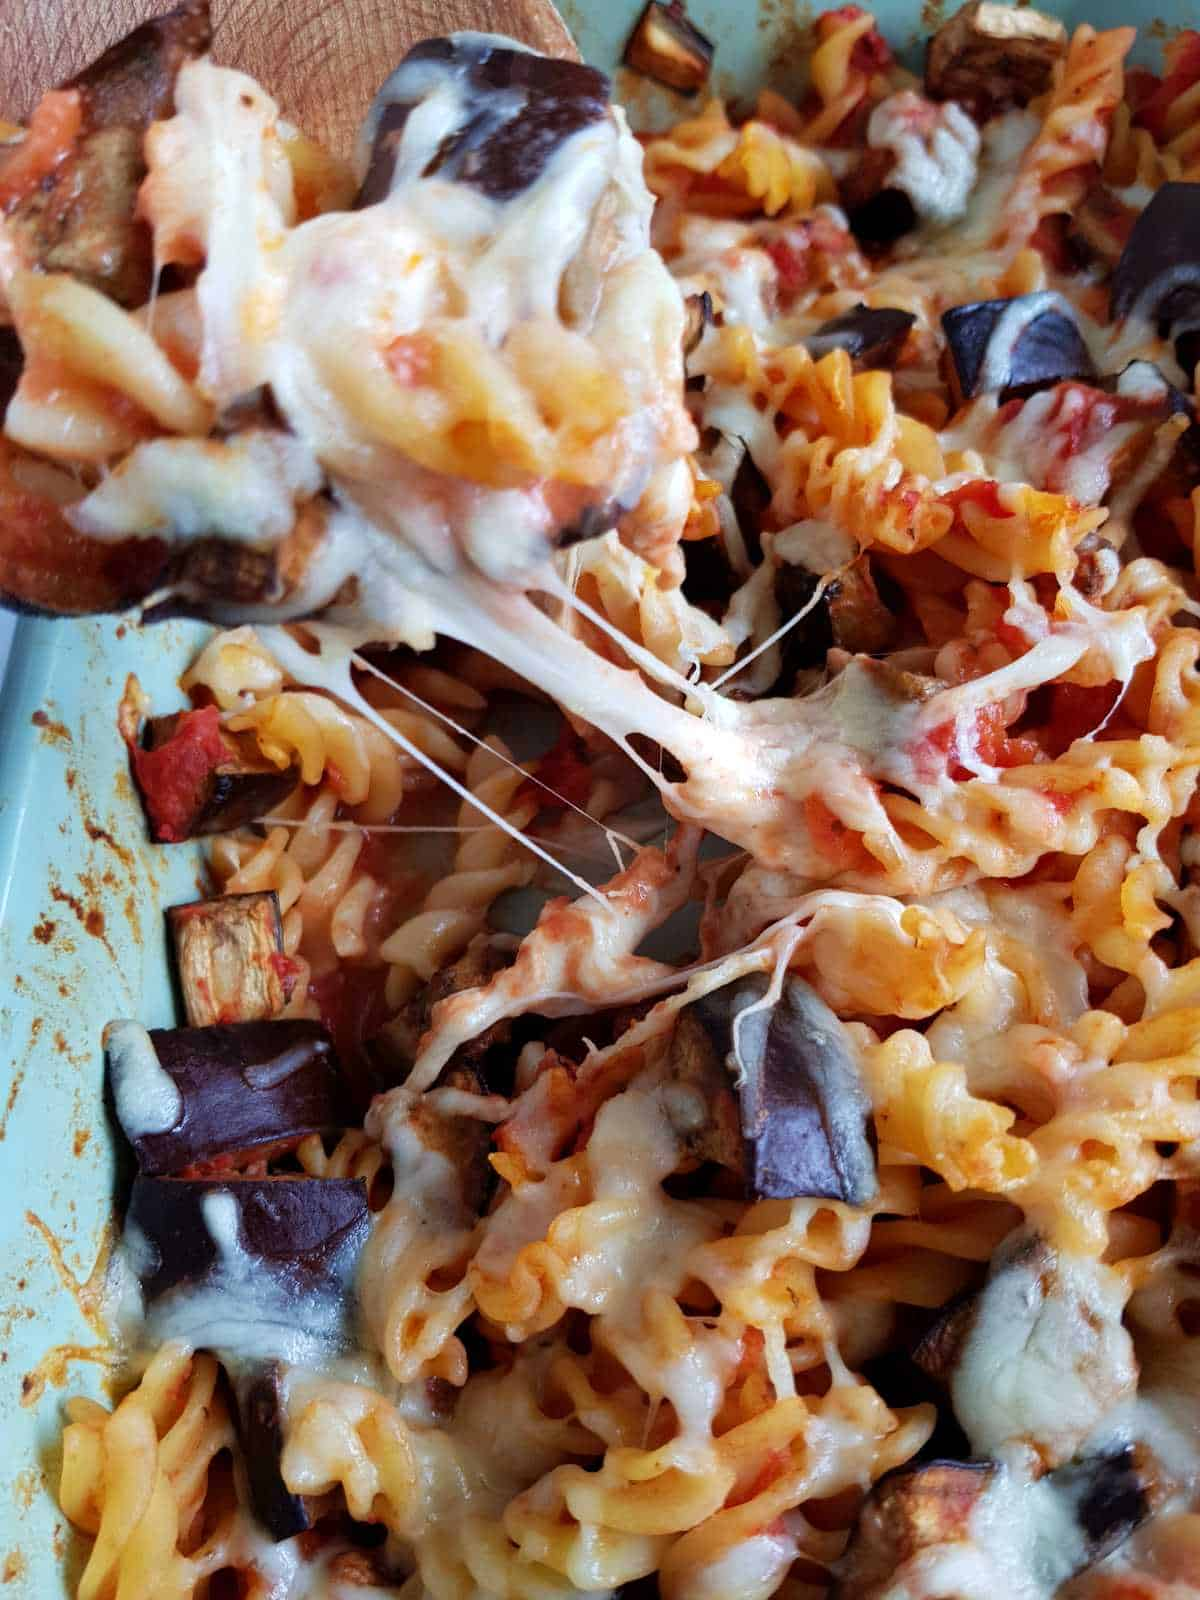 A wooden spoon is lifting out a serving of eggplant mozzarella pasta bake, creating strings of cheese.